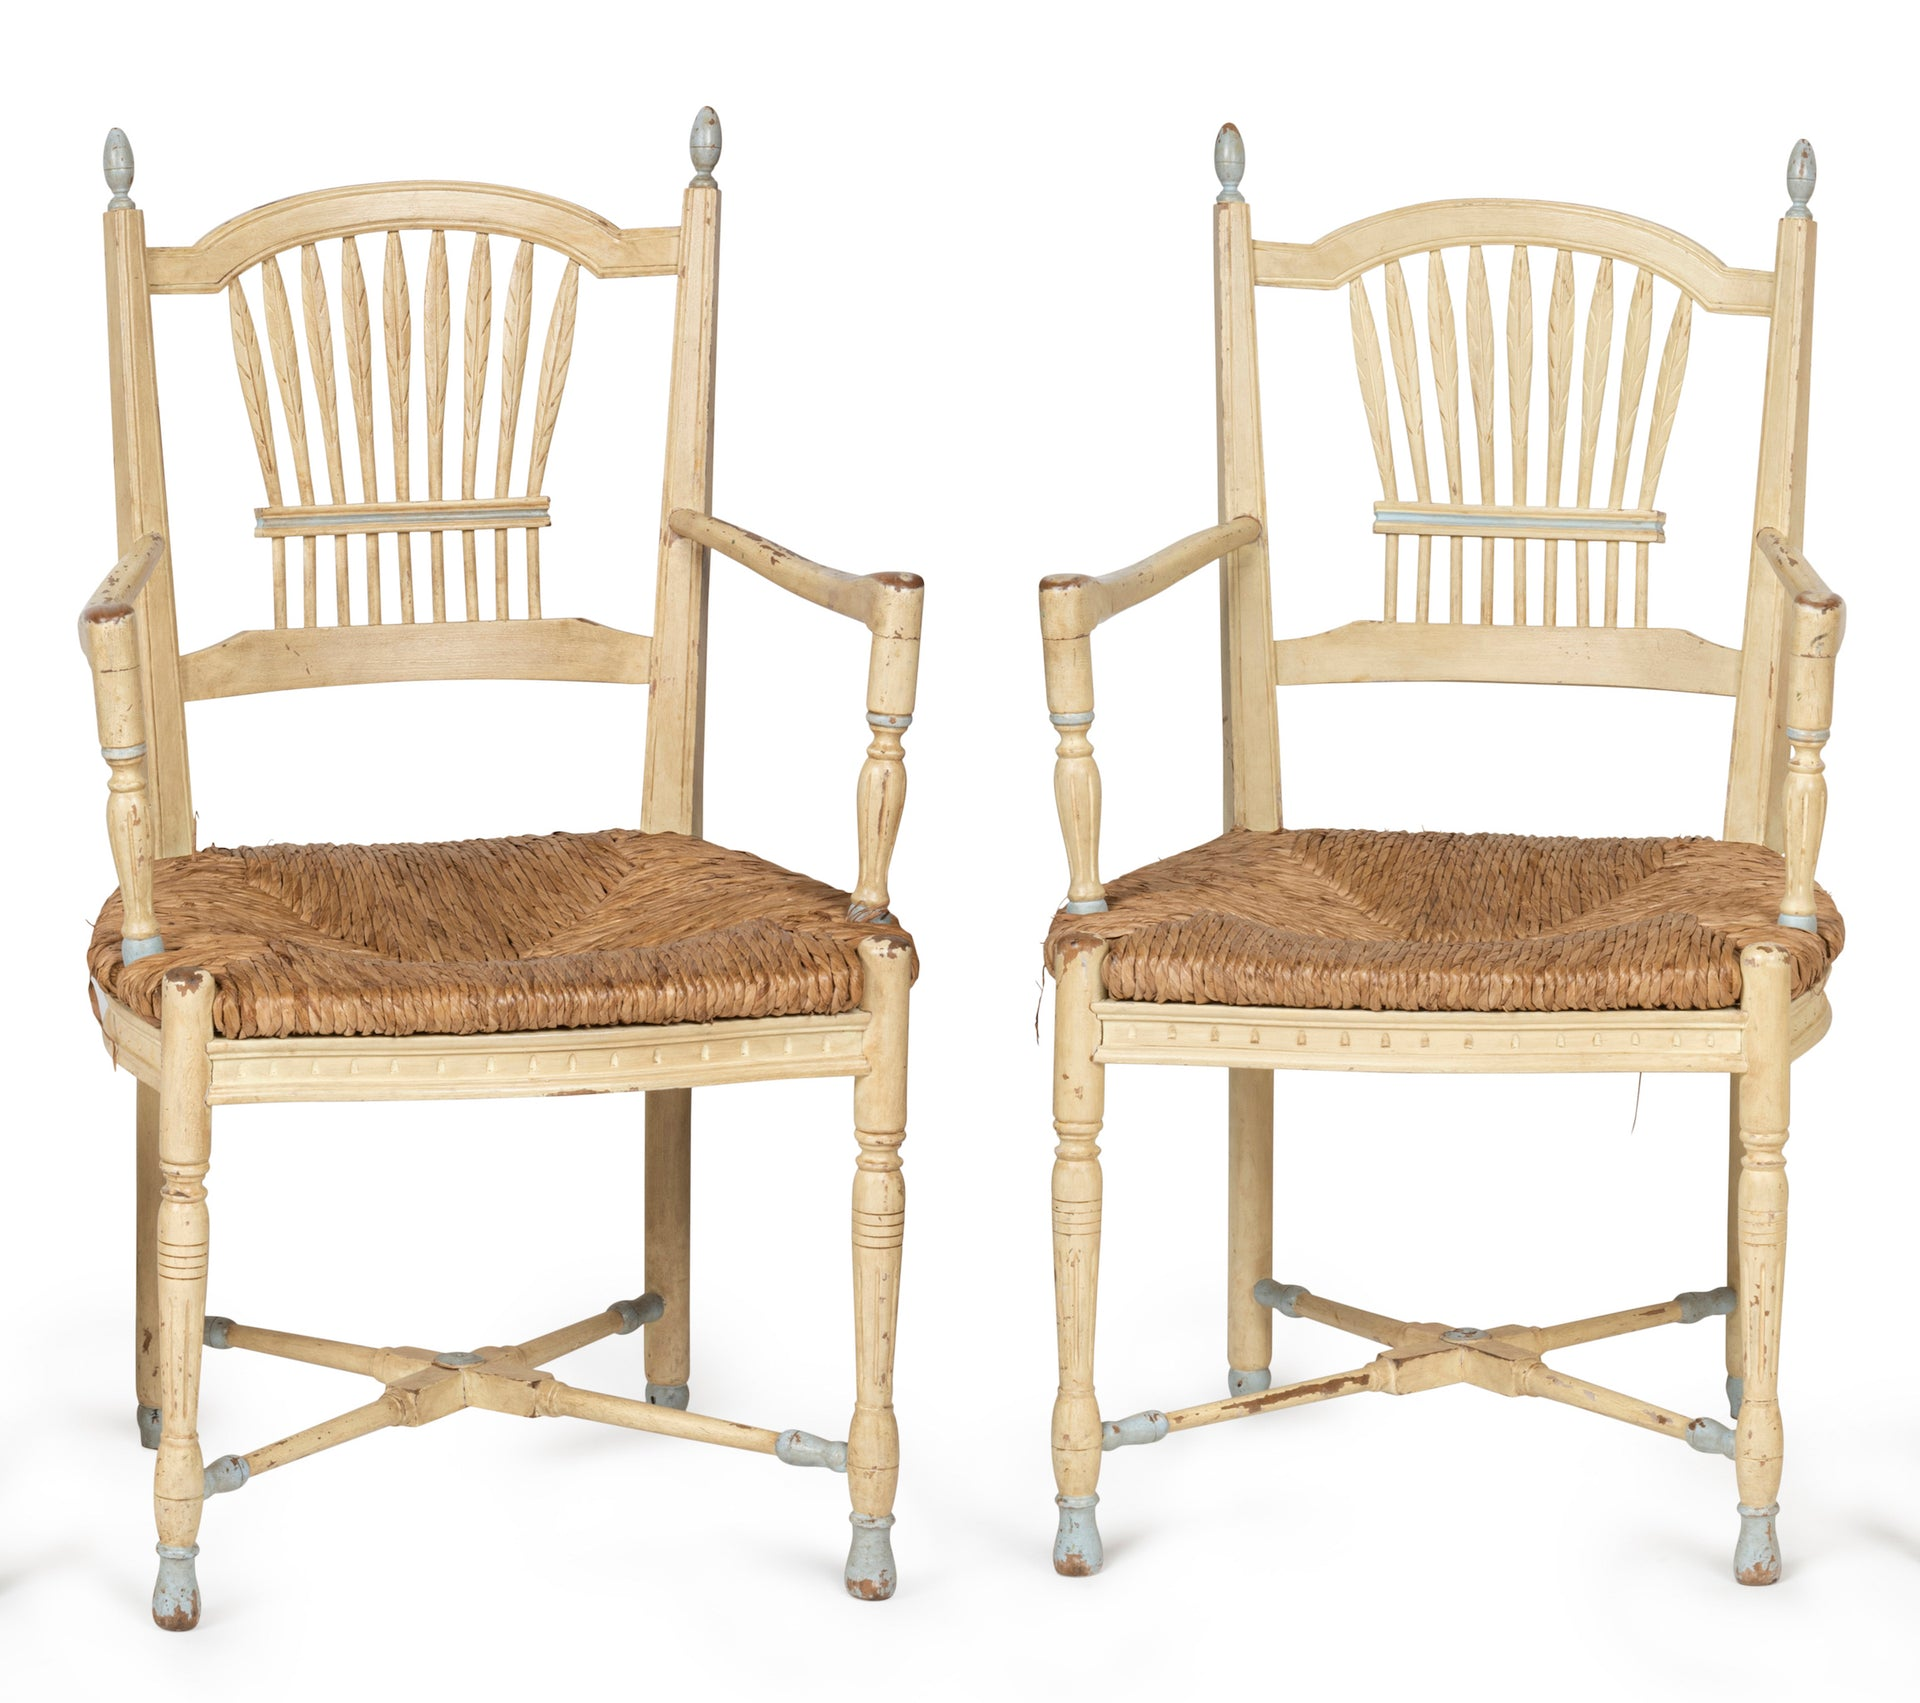 SOLD A set of six unusual painted timber Wheatsheaf design chairs, French Circa 1900